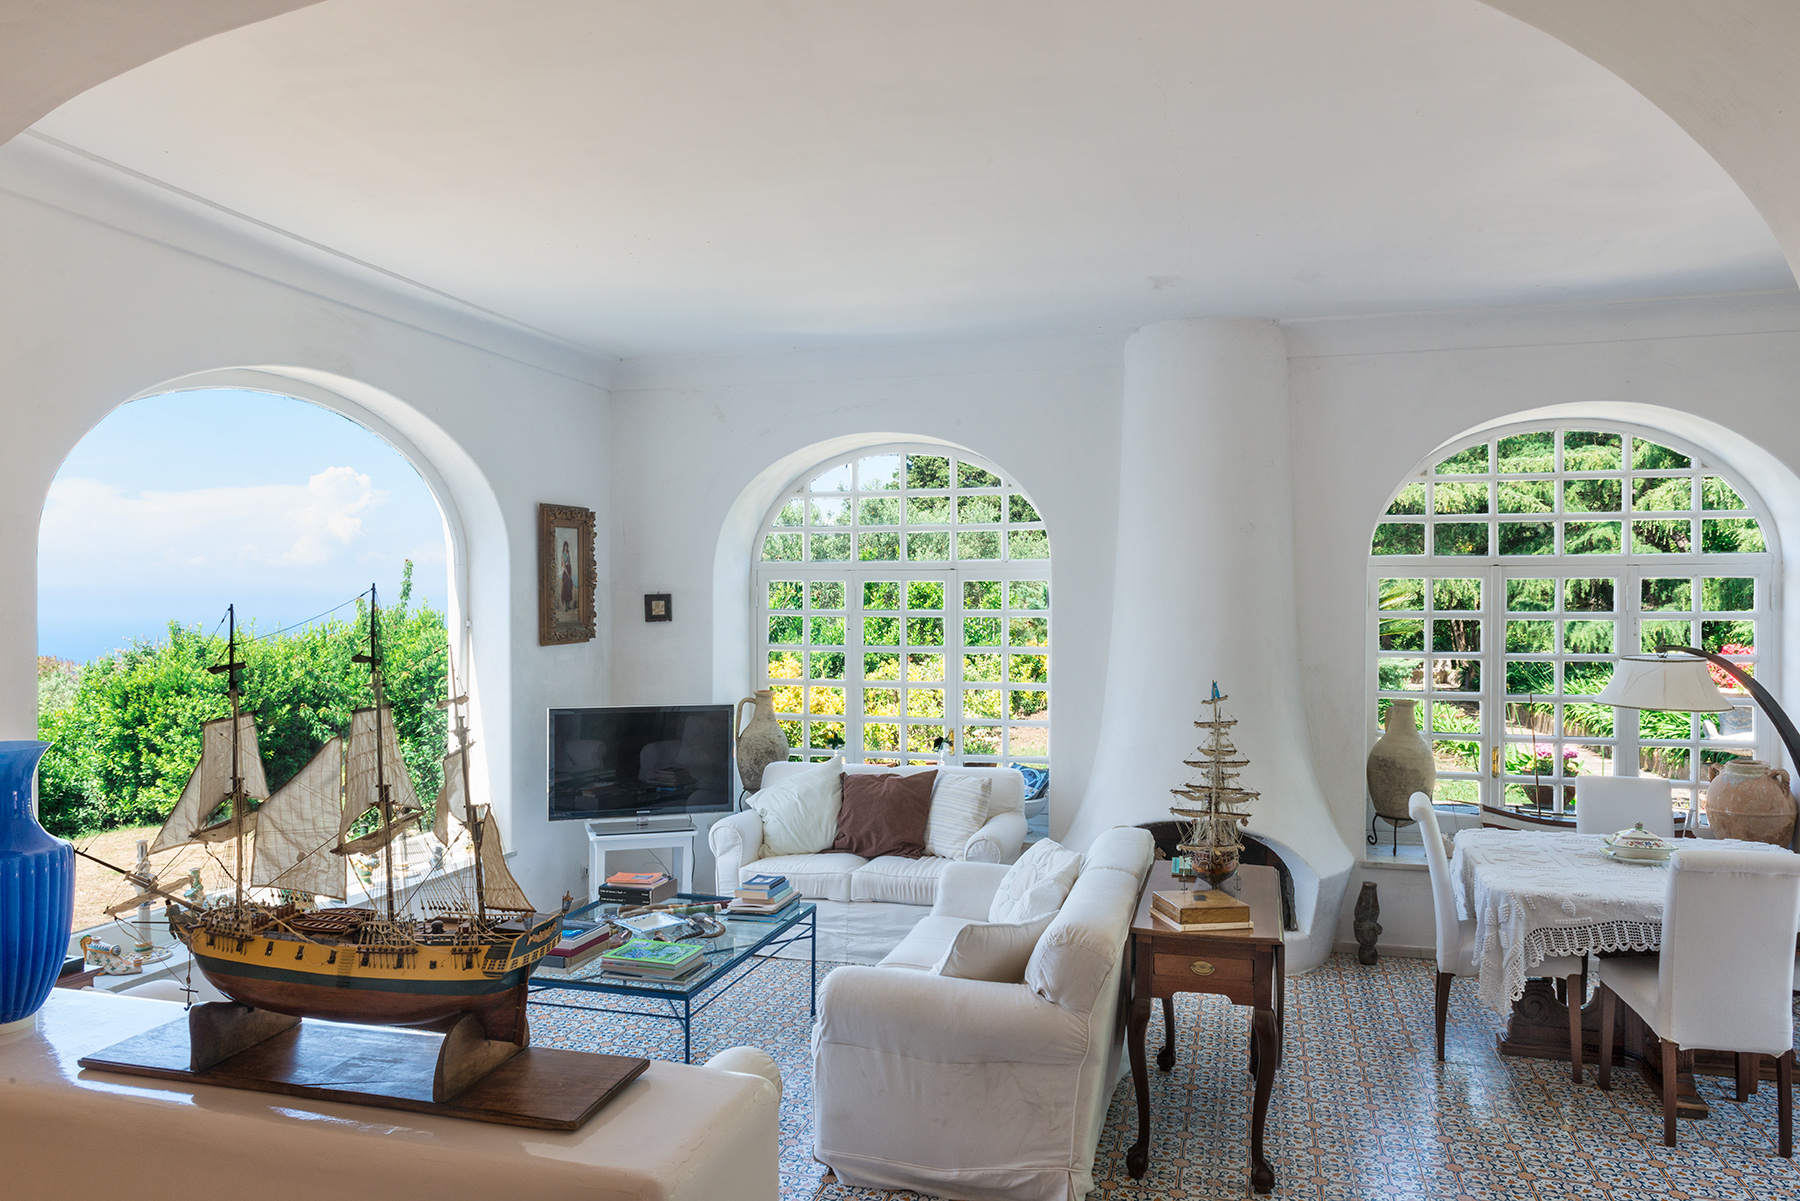 Single Family Home for Sale at Amazing villa in the heart of Anacapri Capri, Italy